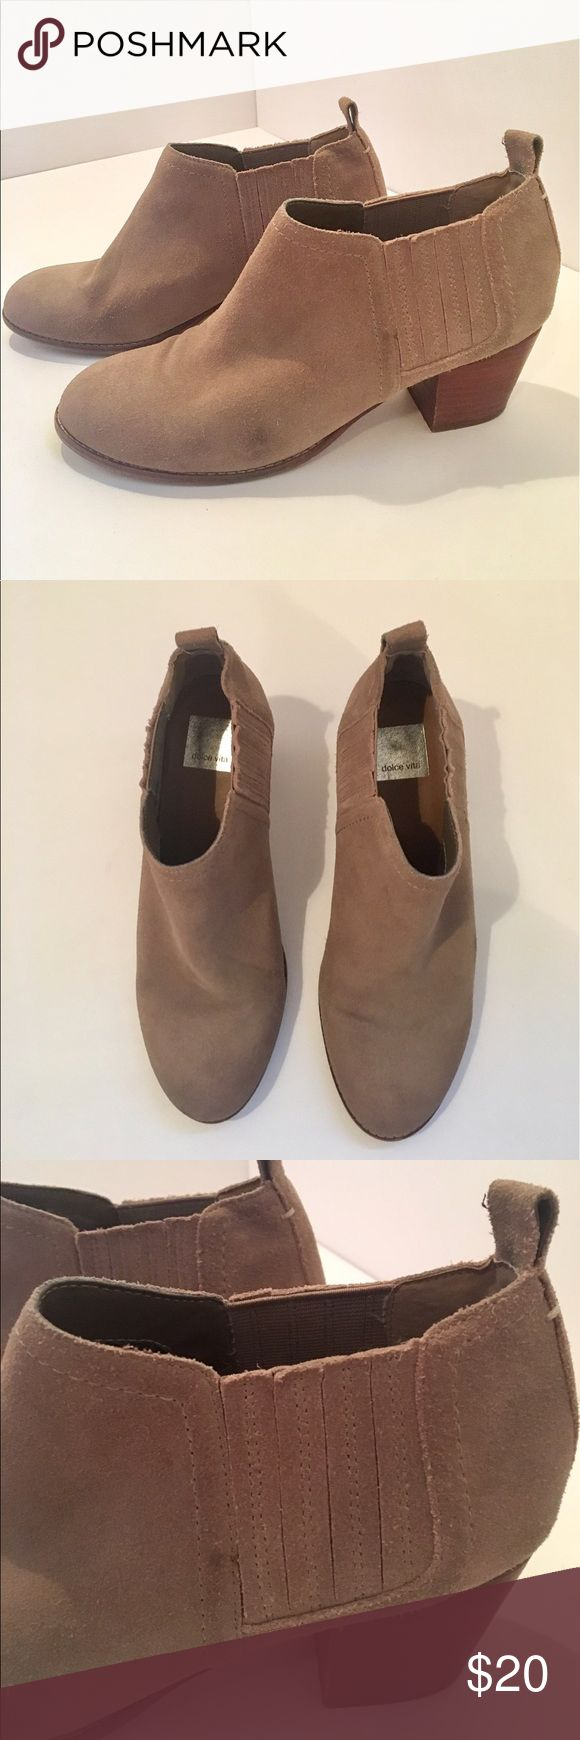 Tan Booties ADORABLE tan booties by Dolce Vita with small heels...details pictured in pictures #3 & #6❤️ comment below if you have any questions or wanna make an offer! Dolce Vita Shoes Ankle Boots & Booties